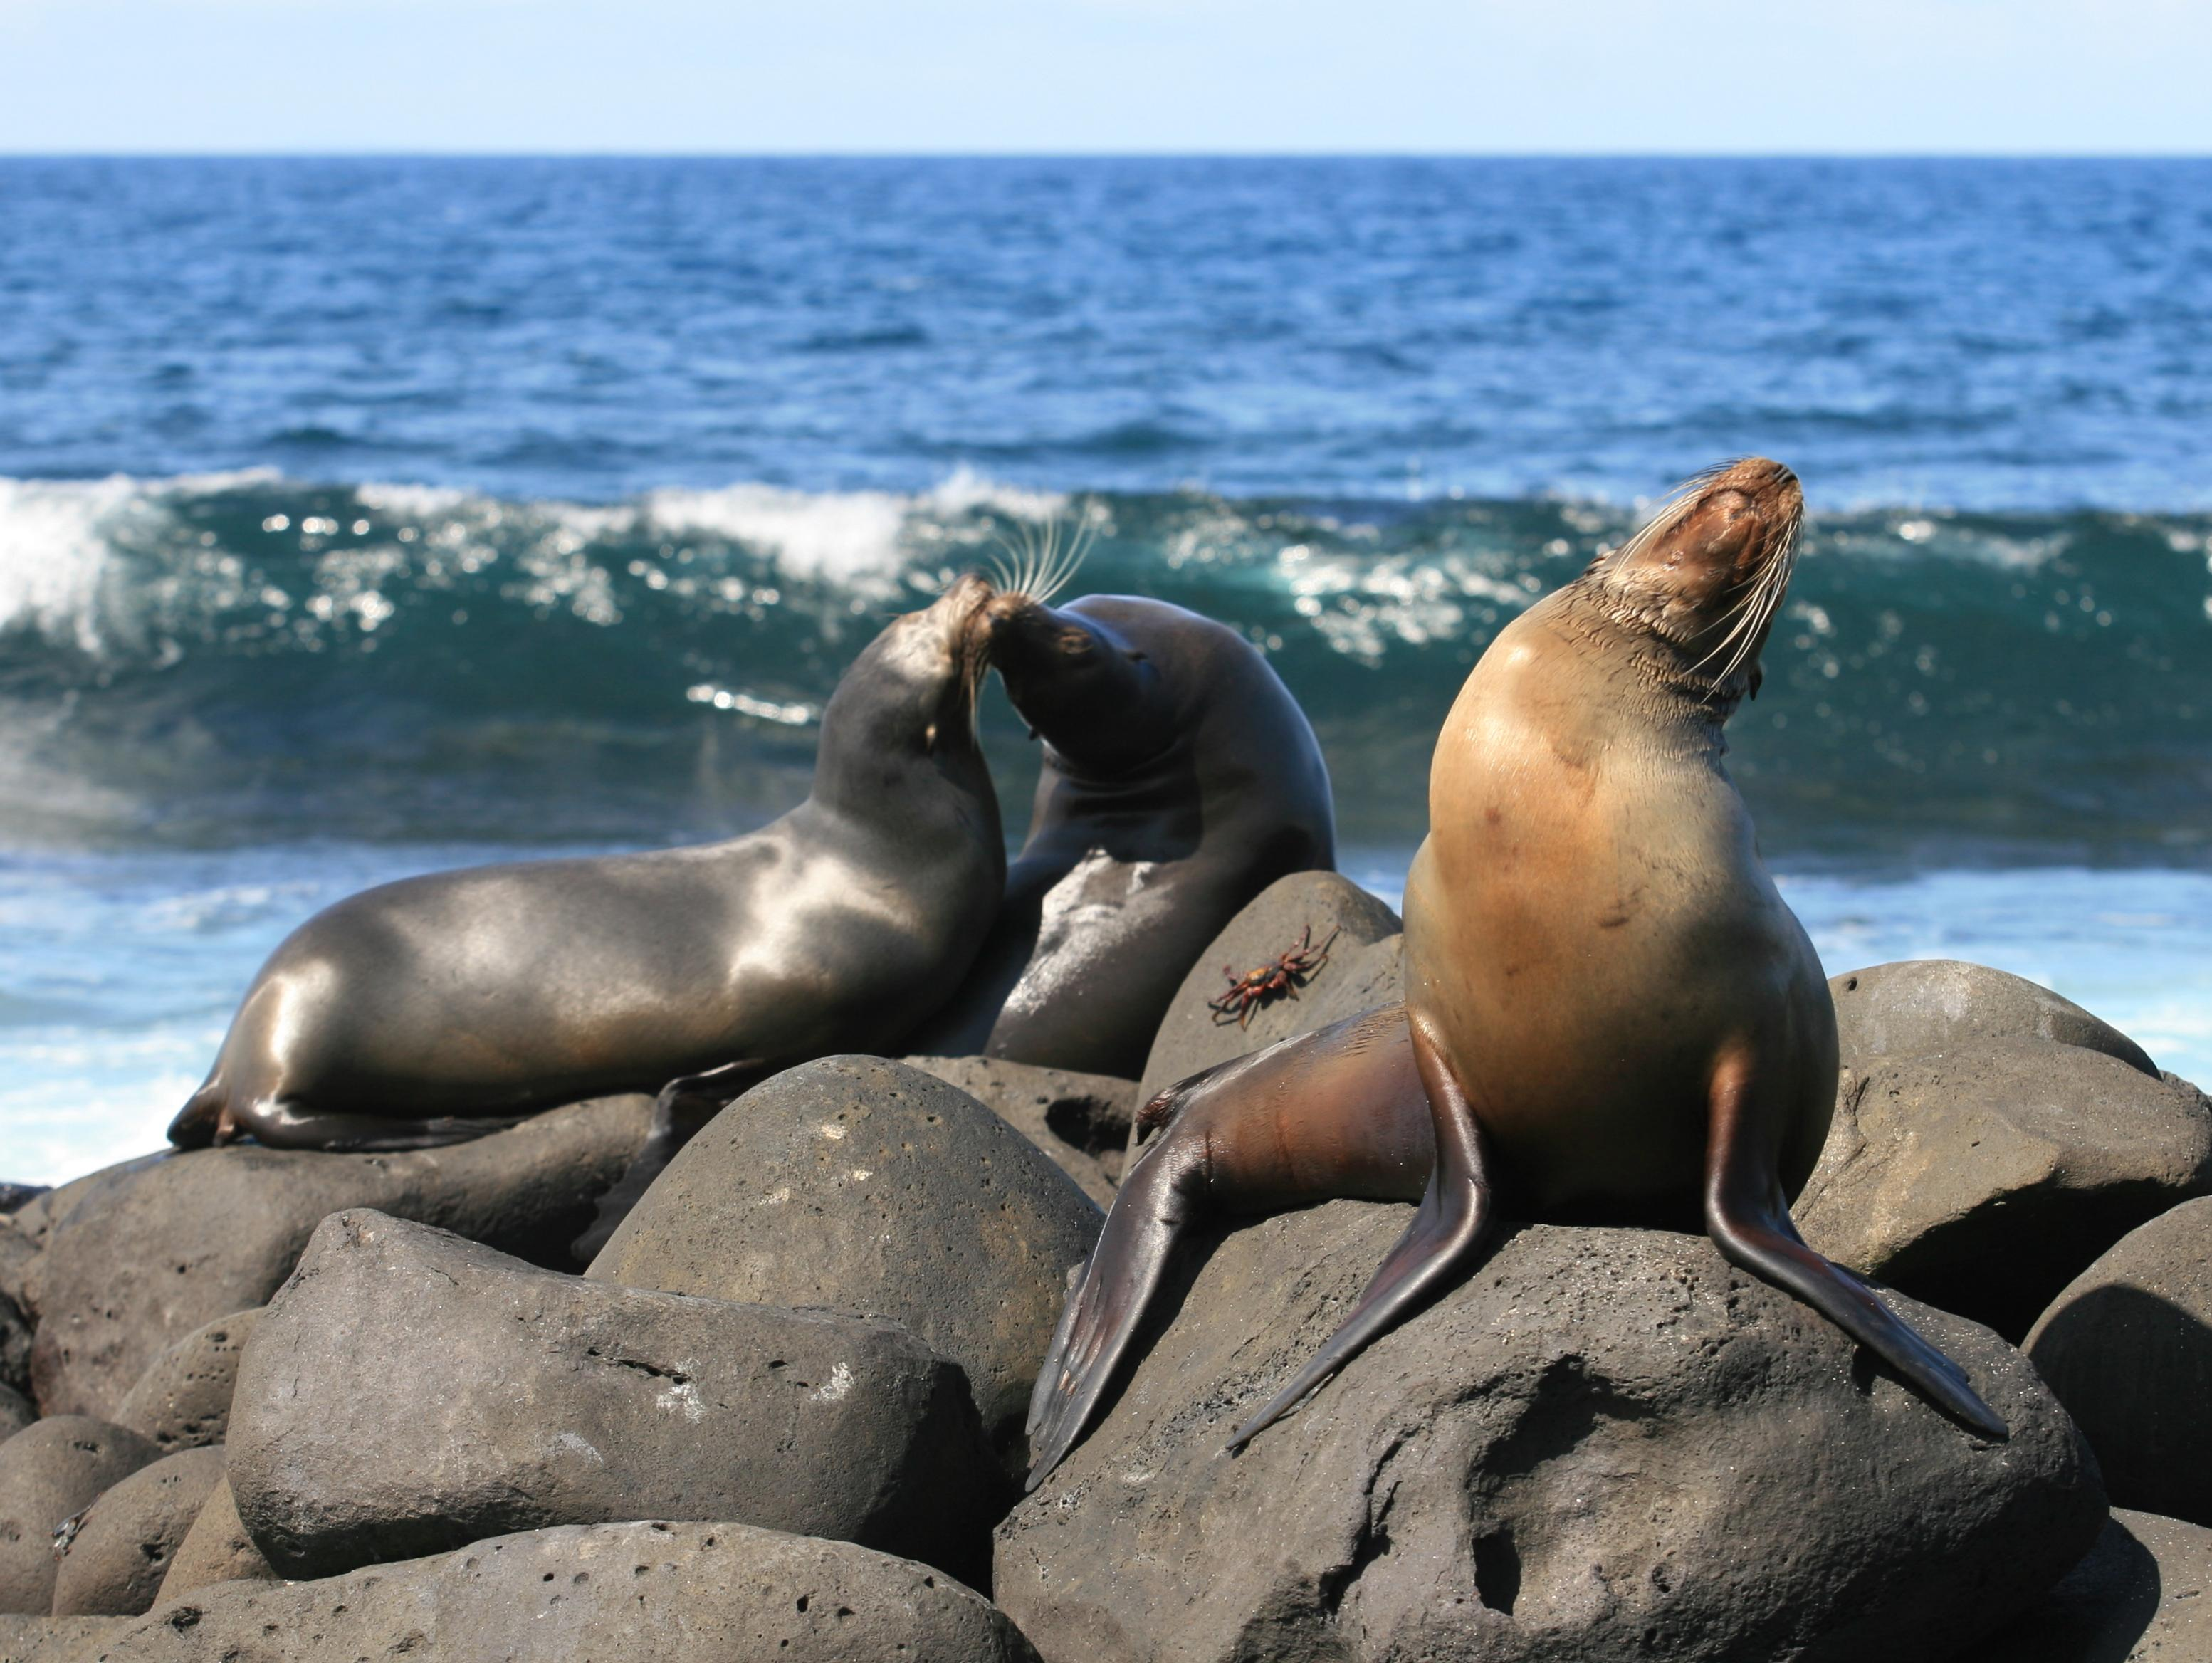 Sea Lions - Endangered Species in the Galapagos